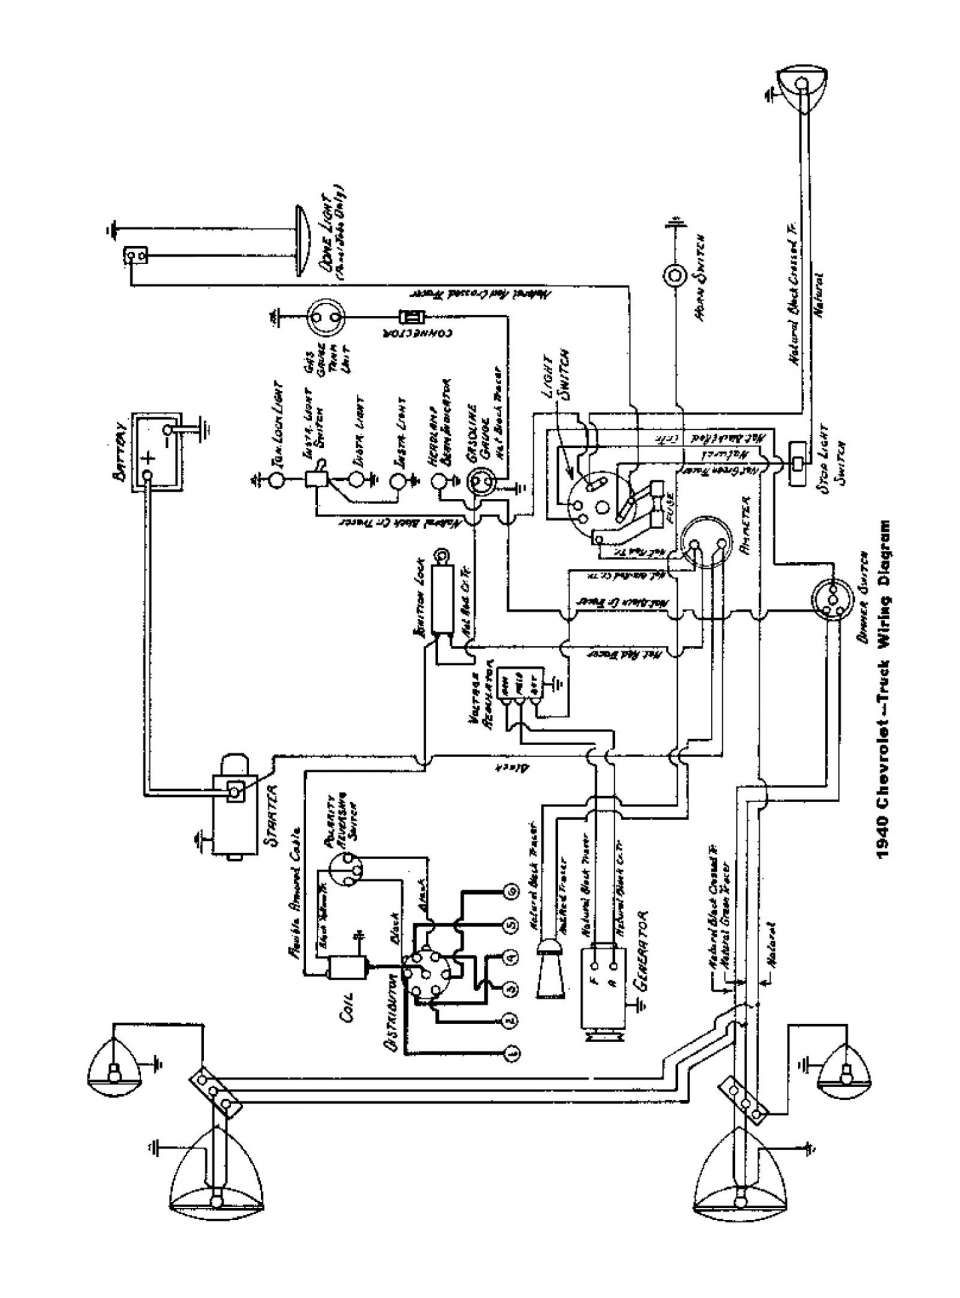 Diagram 1969 Chevy Truck Ignition Switch Diagram Full Version Hd Quality Switch Diagram Rackwiring Media90 It